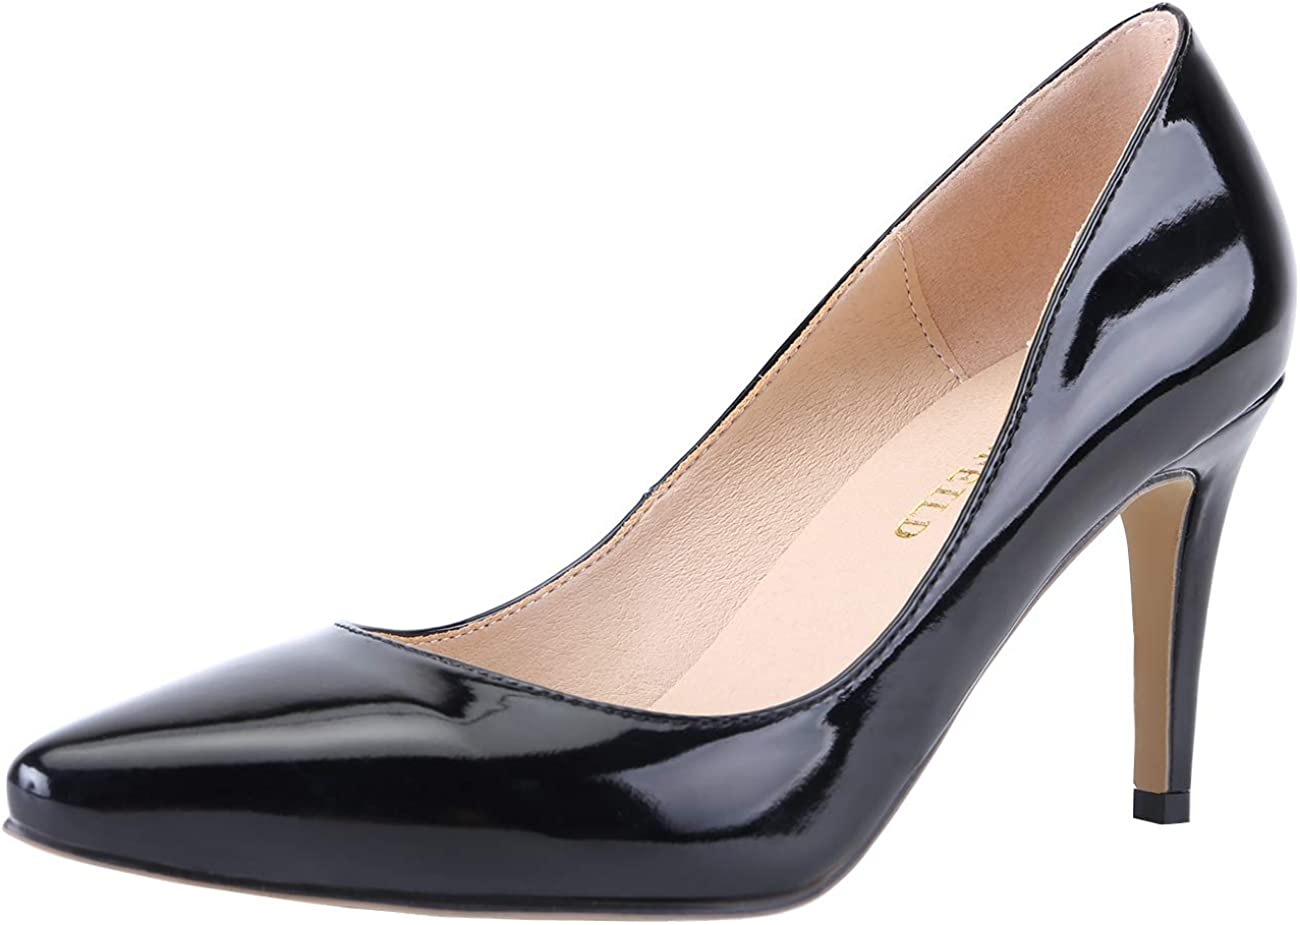 Mofri Womens Classy Pointed Toe Low Cut Stiletto High Heels Slip On Wear to Work Pumps Shoes with Bowknot